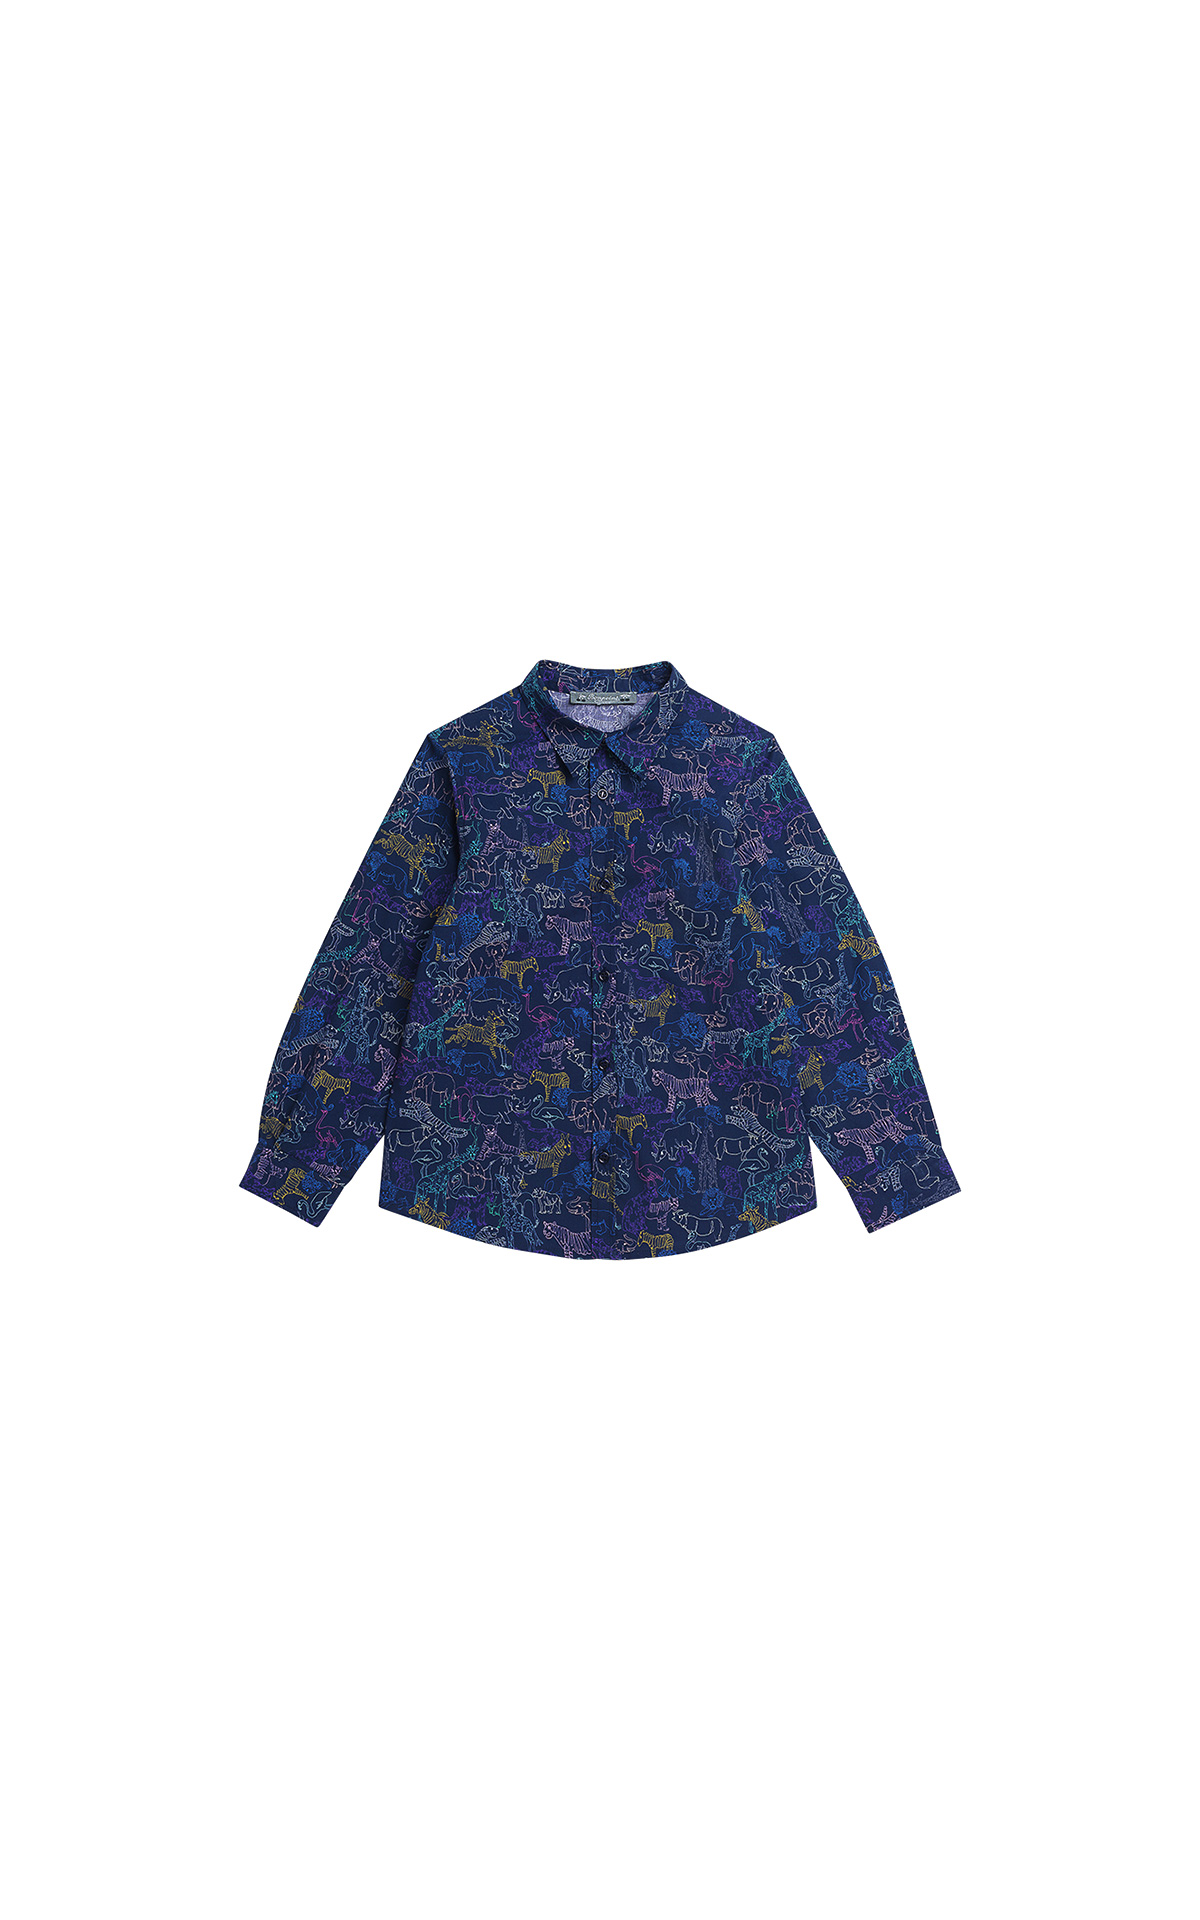 Bonpoint Boy's navy print shirt | La Vallée Village